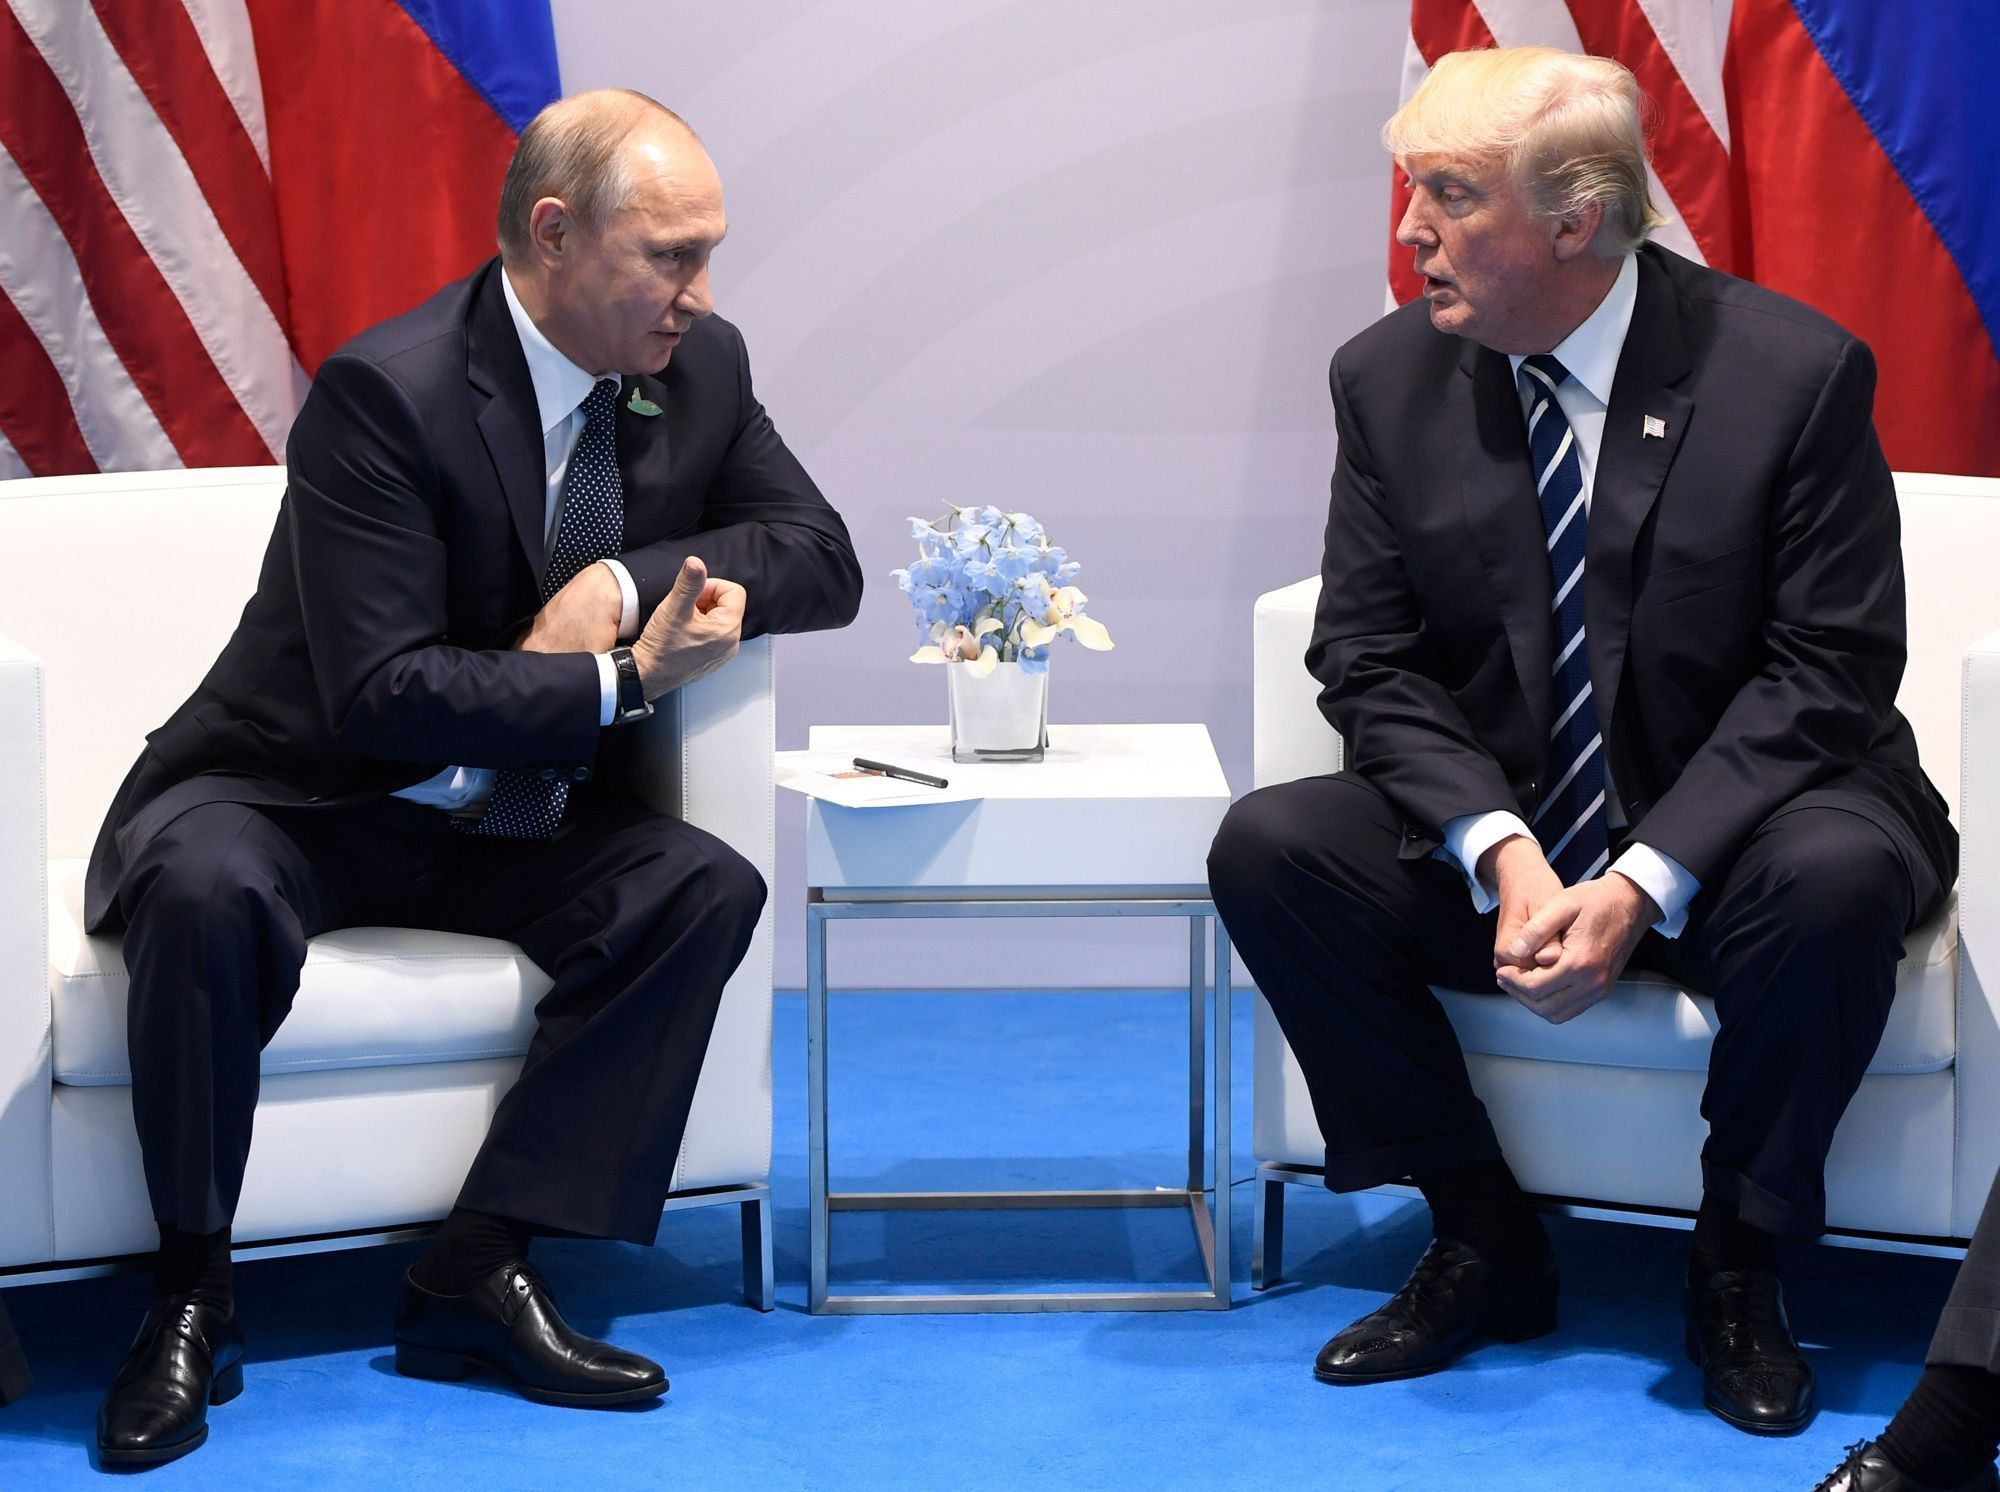 US President Donald Trump and Russia's President Vladimir Putin hold a meeting on the sidelines of the G20 Summit in Hamburg, Germany, on July 7, 2017. / AFP PHOTO / SAUL LOEB